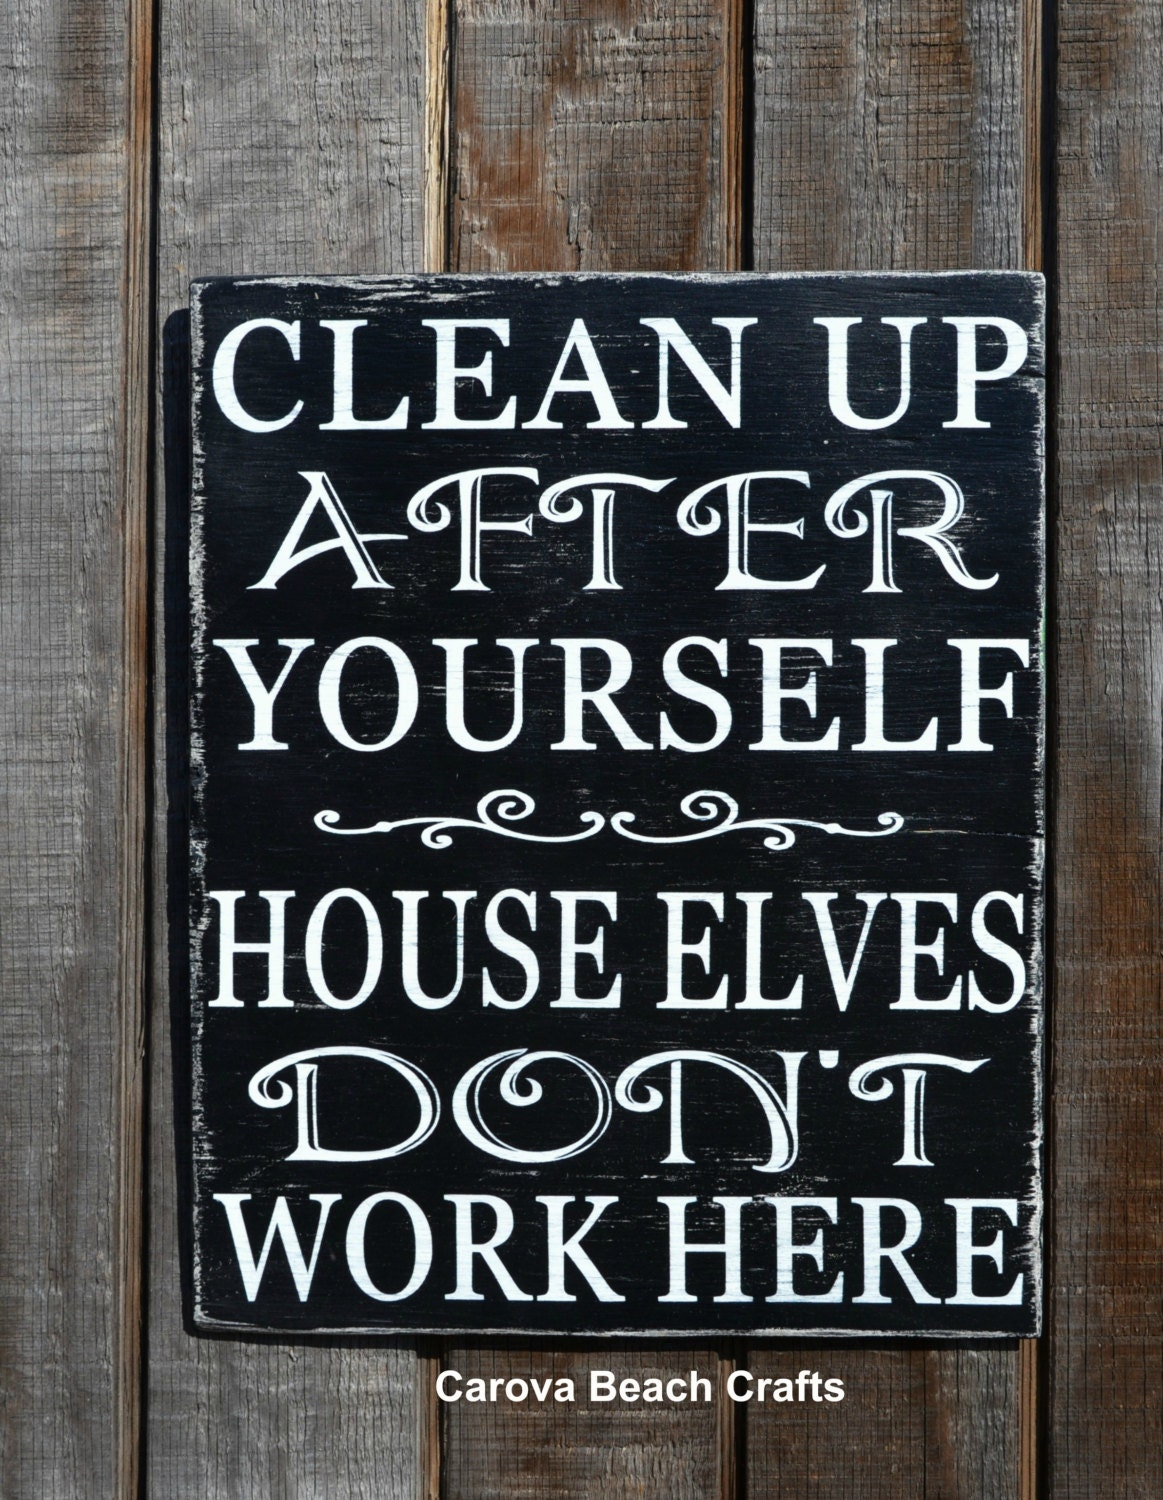 Funny Kitchen Signs For Home The Image